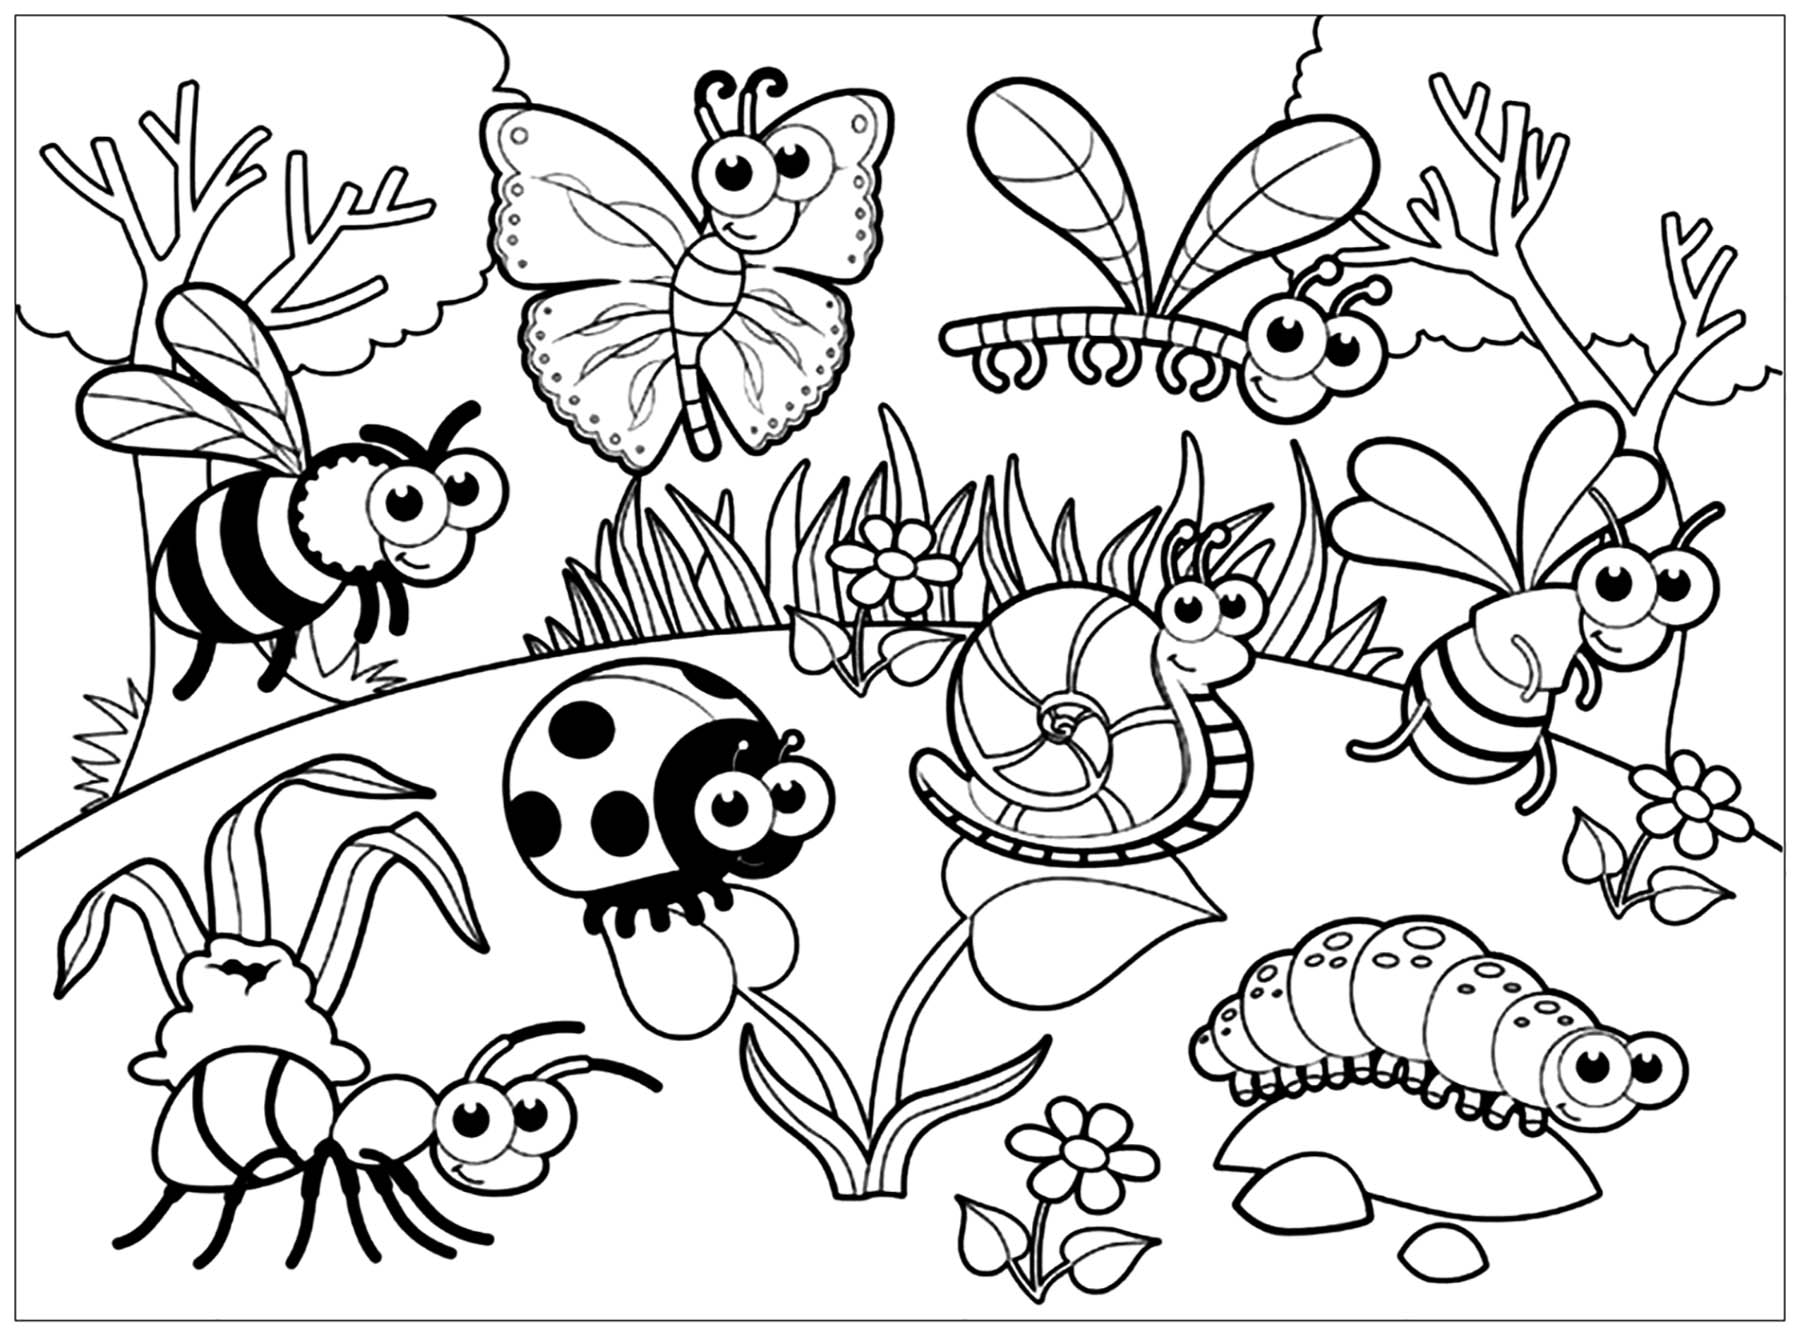 Insect coloring sheets